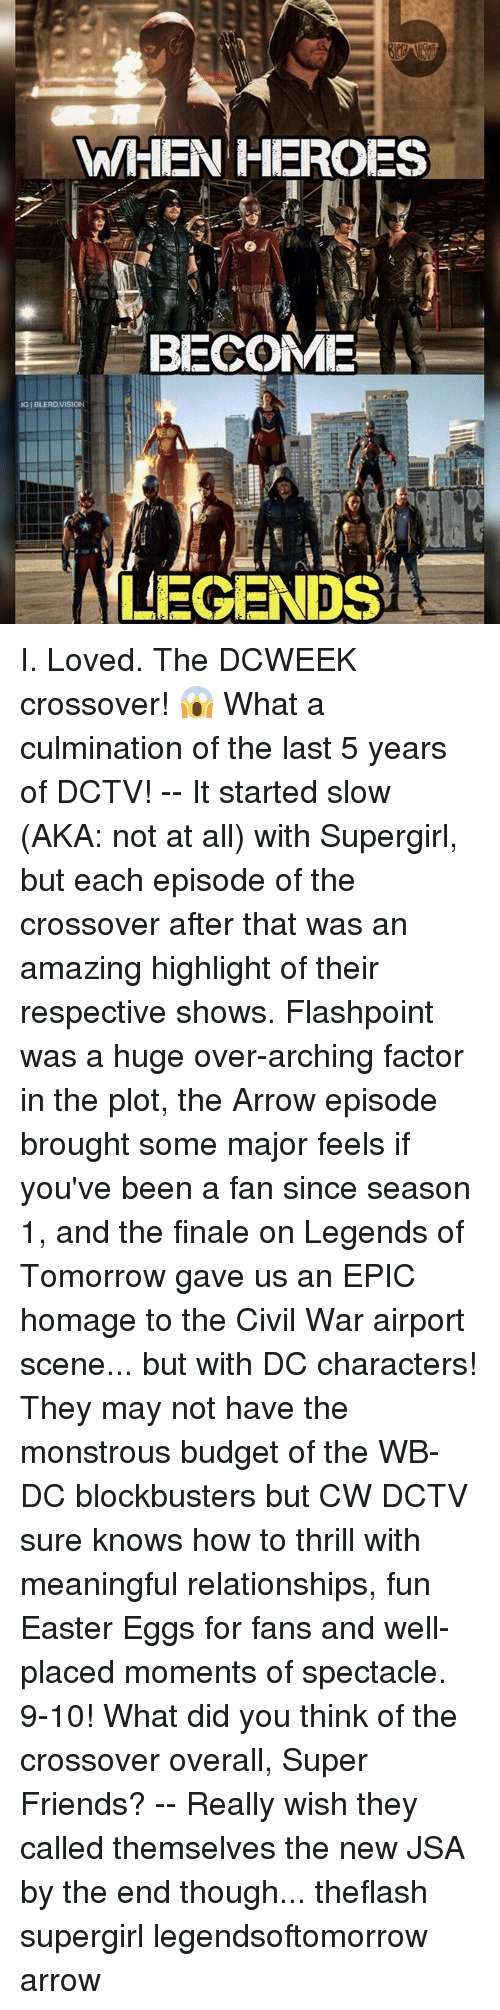 dc characters: WHEN HEROES  BECOME  IGIBLERD VISION  LEGENDS I. Loved. The DCWEEK crossover! 😱 What a culmination of the last 5 years of DCTV! -- It started slow (AKA: not at all) with Supergirl, but each episode of the crossover after that was an amazing highlight of their respective shows. Flashpoint was a huge over-arching factor in the plot, the Arrow episode brought some major feels if you've been a fan since season 1, and the finale on Legends of Tomorrow gave us an EPIC homage to the Civil War airport scene... but with DC characters! They may not have the monstrous budget of the WB-DC blockbusters but CW DCTV sure knows how to thrill with meaningful relationships, fun Easter Eggs for fans and well-placed moments of spectacle. 9-10! What did you think of the crossover overall, Super Friends? -- Really wish they called themselves the new JSA by the end though... theflash supergirl legendsoftomorrow arrow